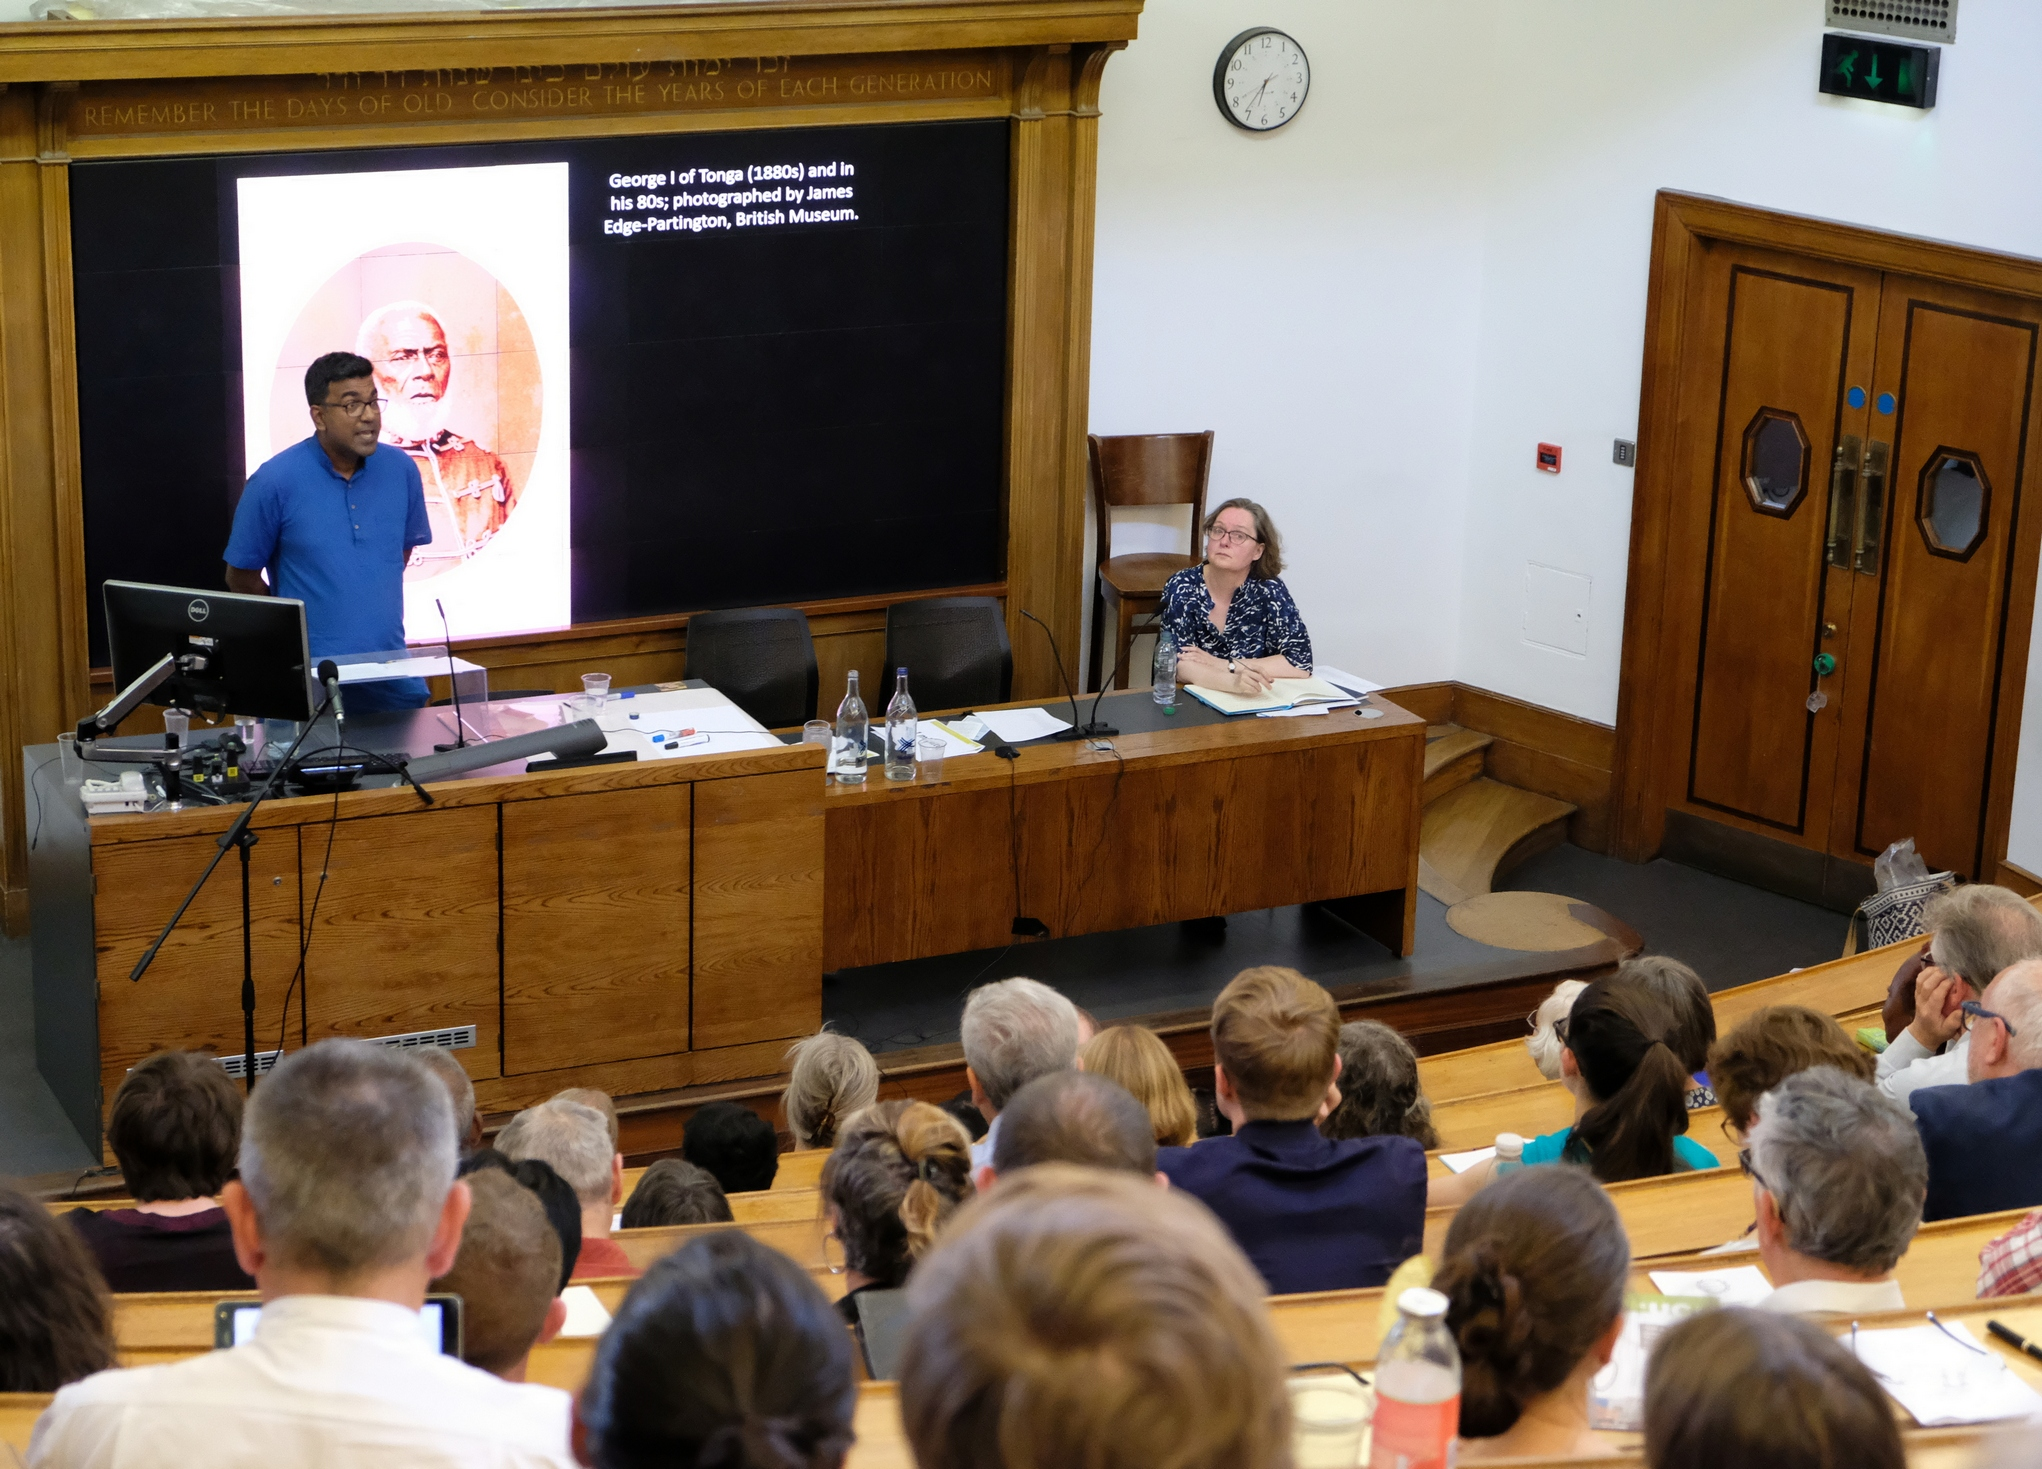 Dr Sujit Sivasundaram stands in from of his presentation as he speaks to a large audience in the image foreground. Professor Margot Finn, the chair of the event sits to the speaker's right.